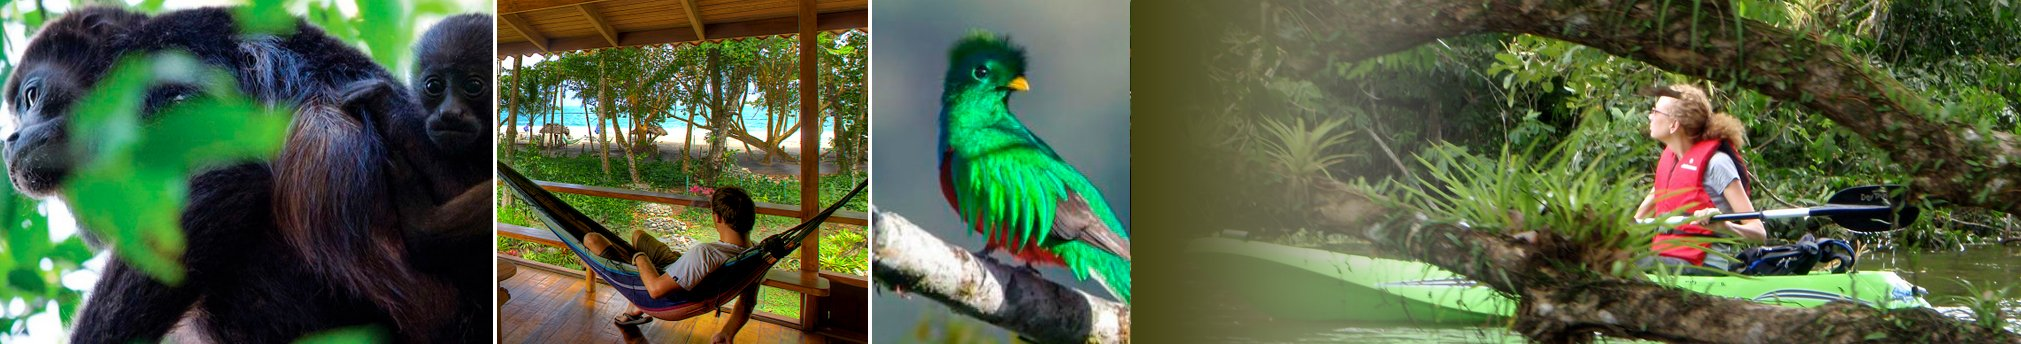 Wildlife Costa Rica  - Wildlife spotting tips while in Costa Rica